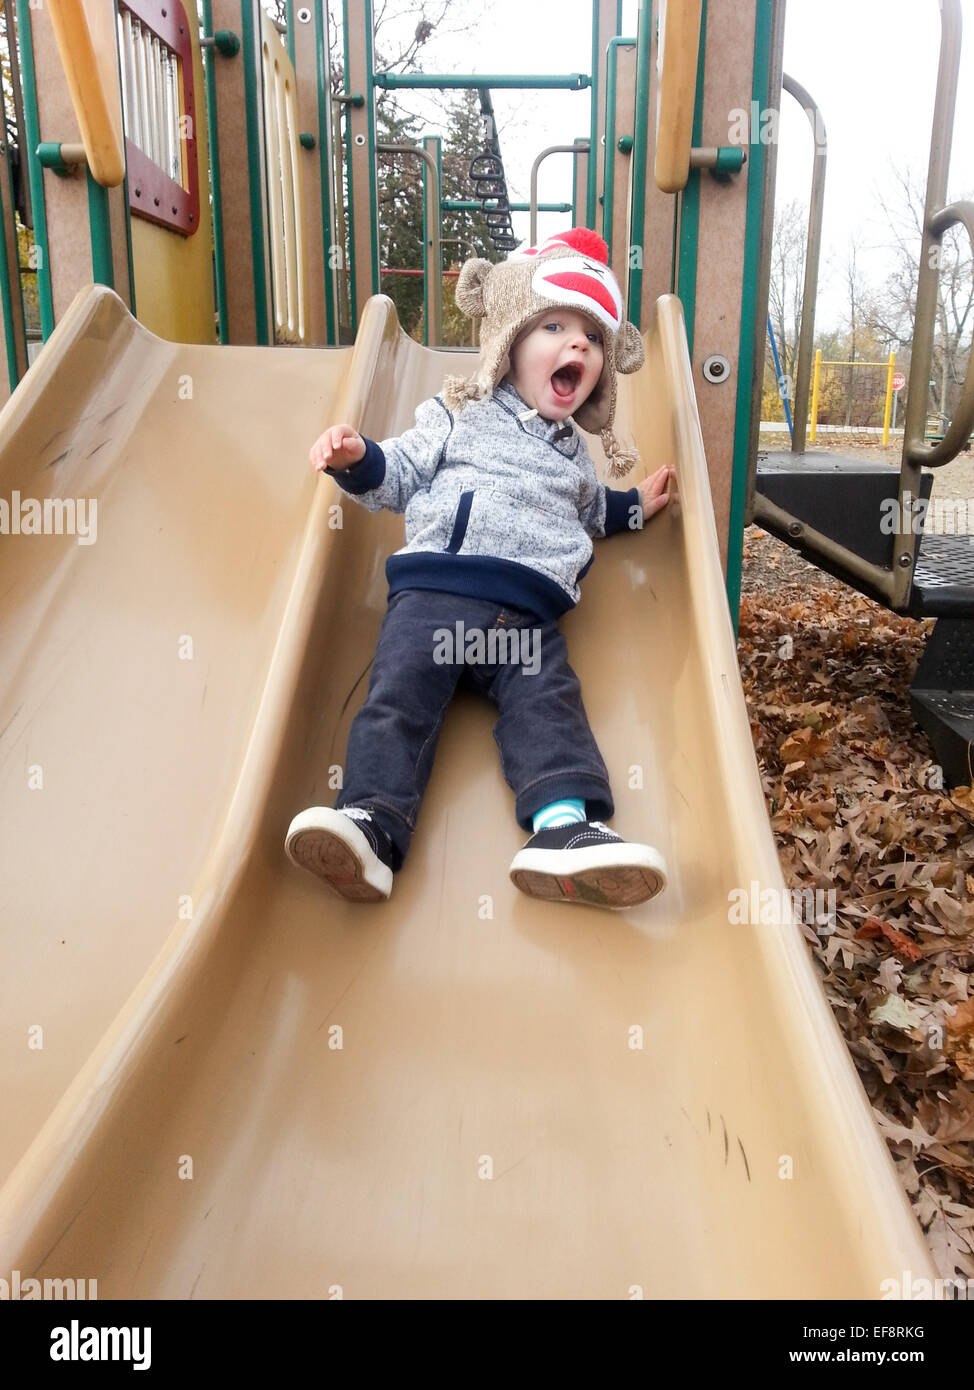 Boy sliding on playground - Stock Image